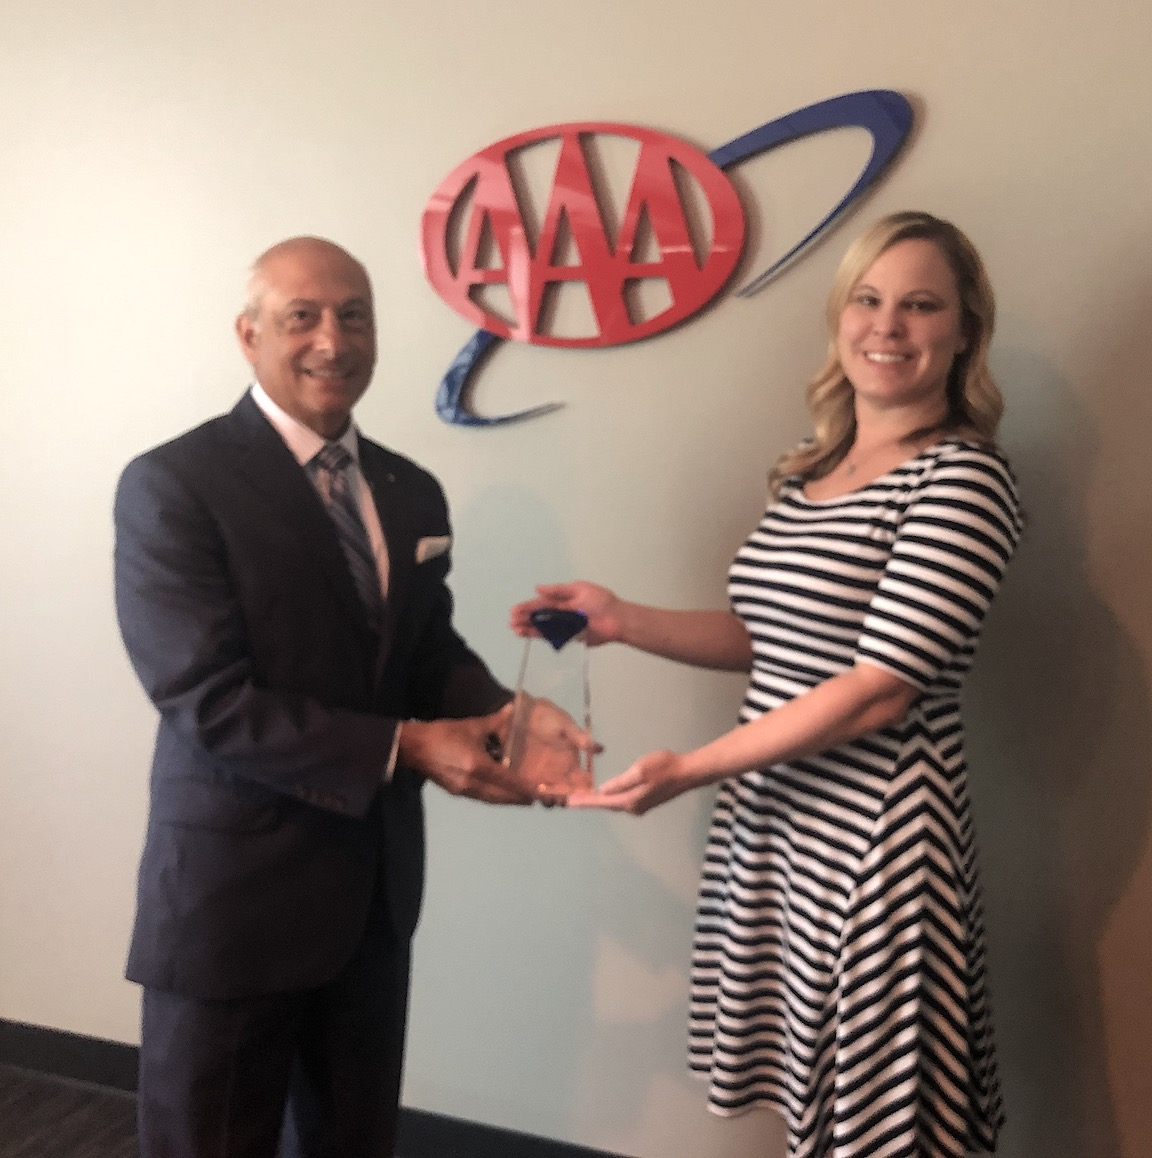 Tony Spada, president and CEO of AAA Western and Central New York and Stacey McConnell, vice president of insurance at AAA Western and Central New York, accepted a 2019 Top Performer Award from AAA for member use and growth for Insurance products.